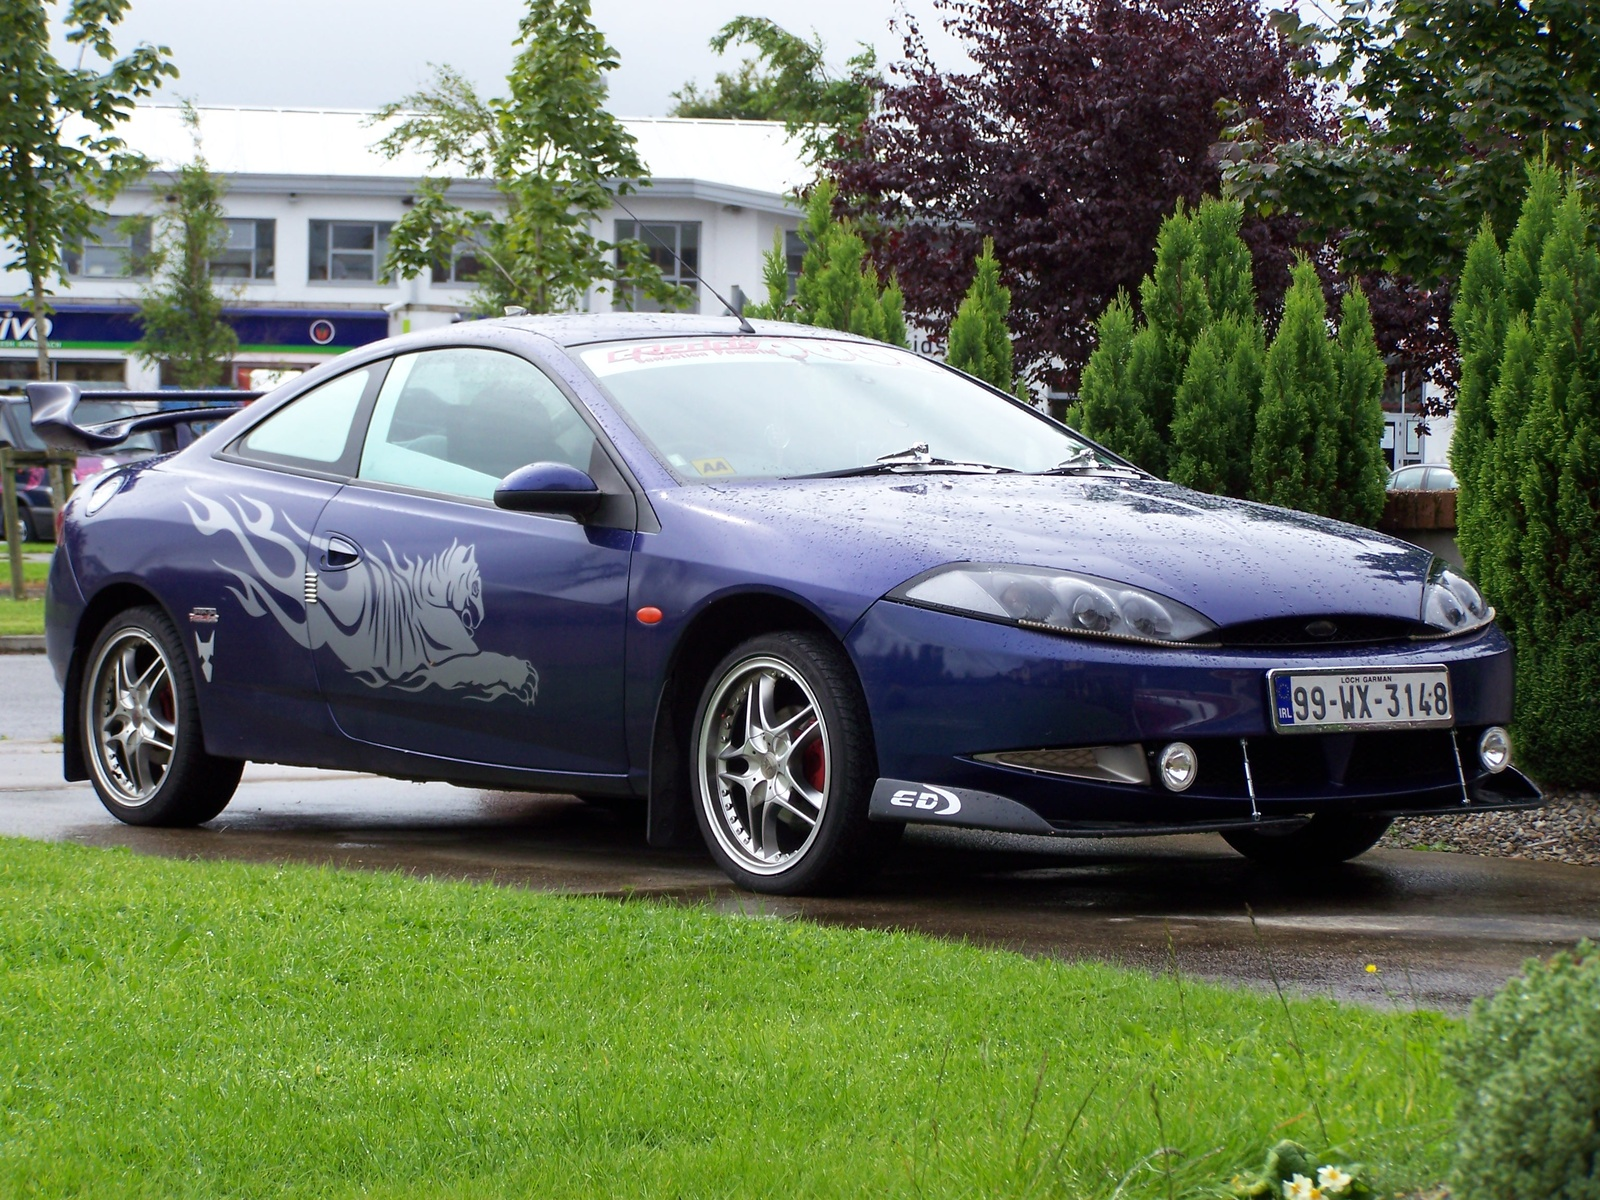 Ford cougar 2001 photo - 7